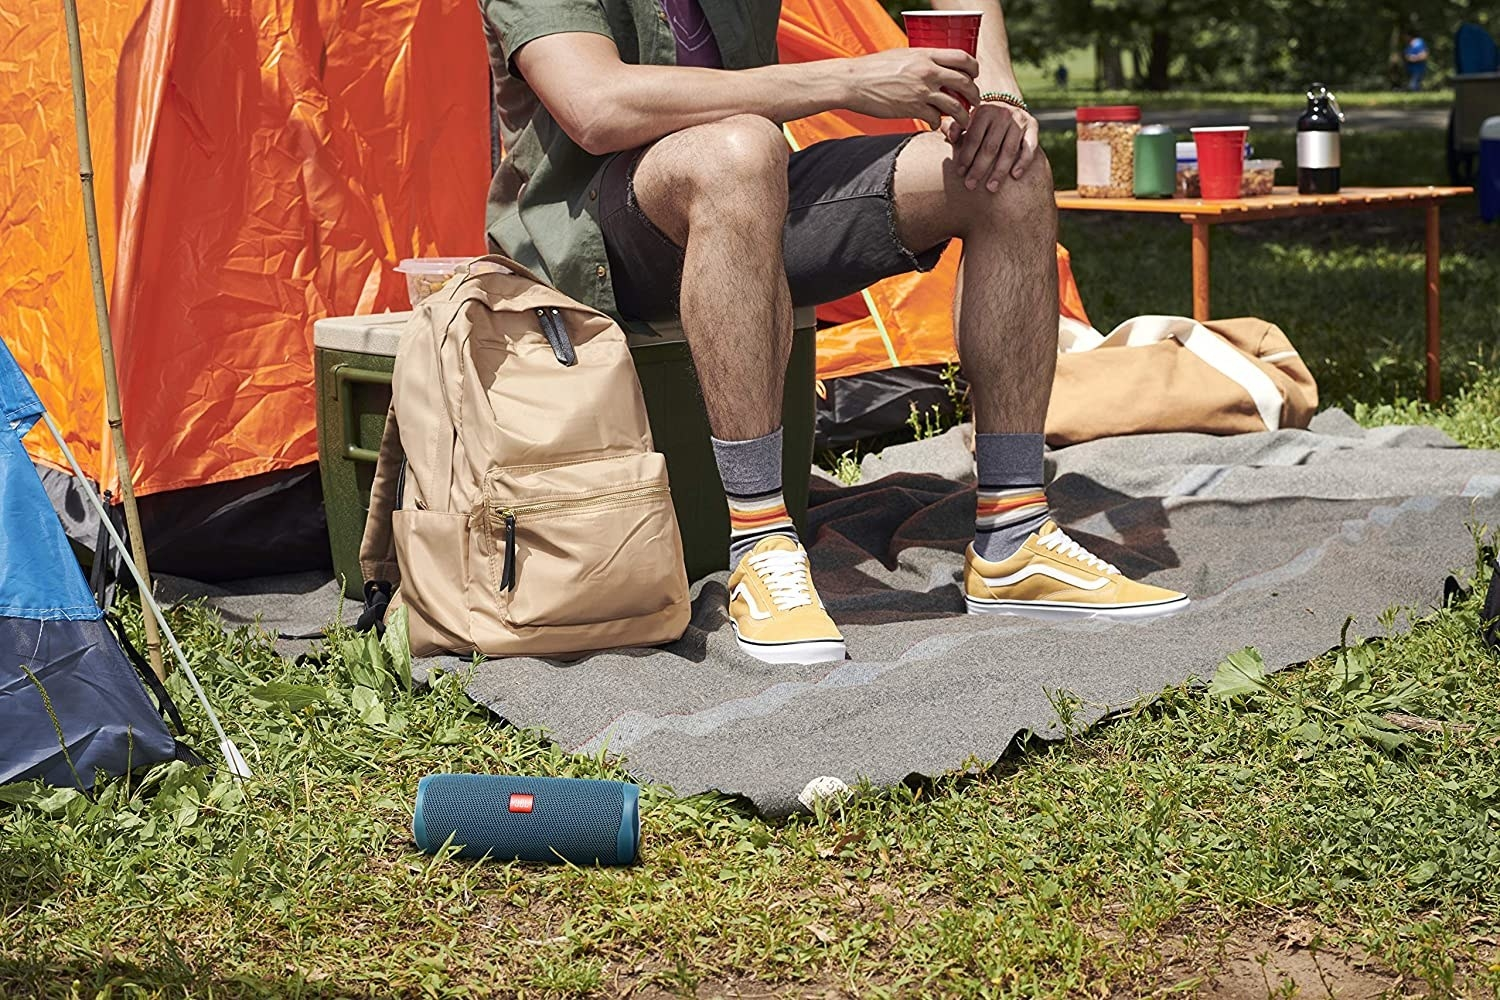 A person sitting on a cooler with a portable speaker on the grass in front of them